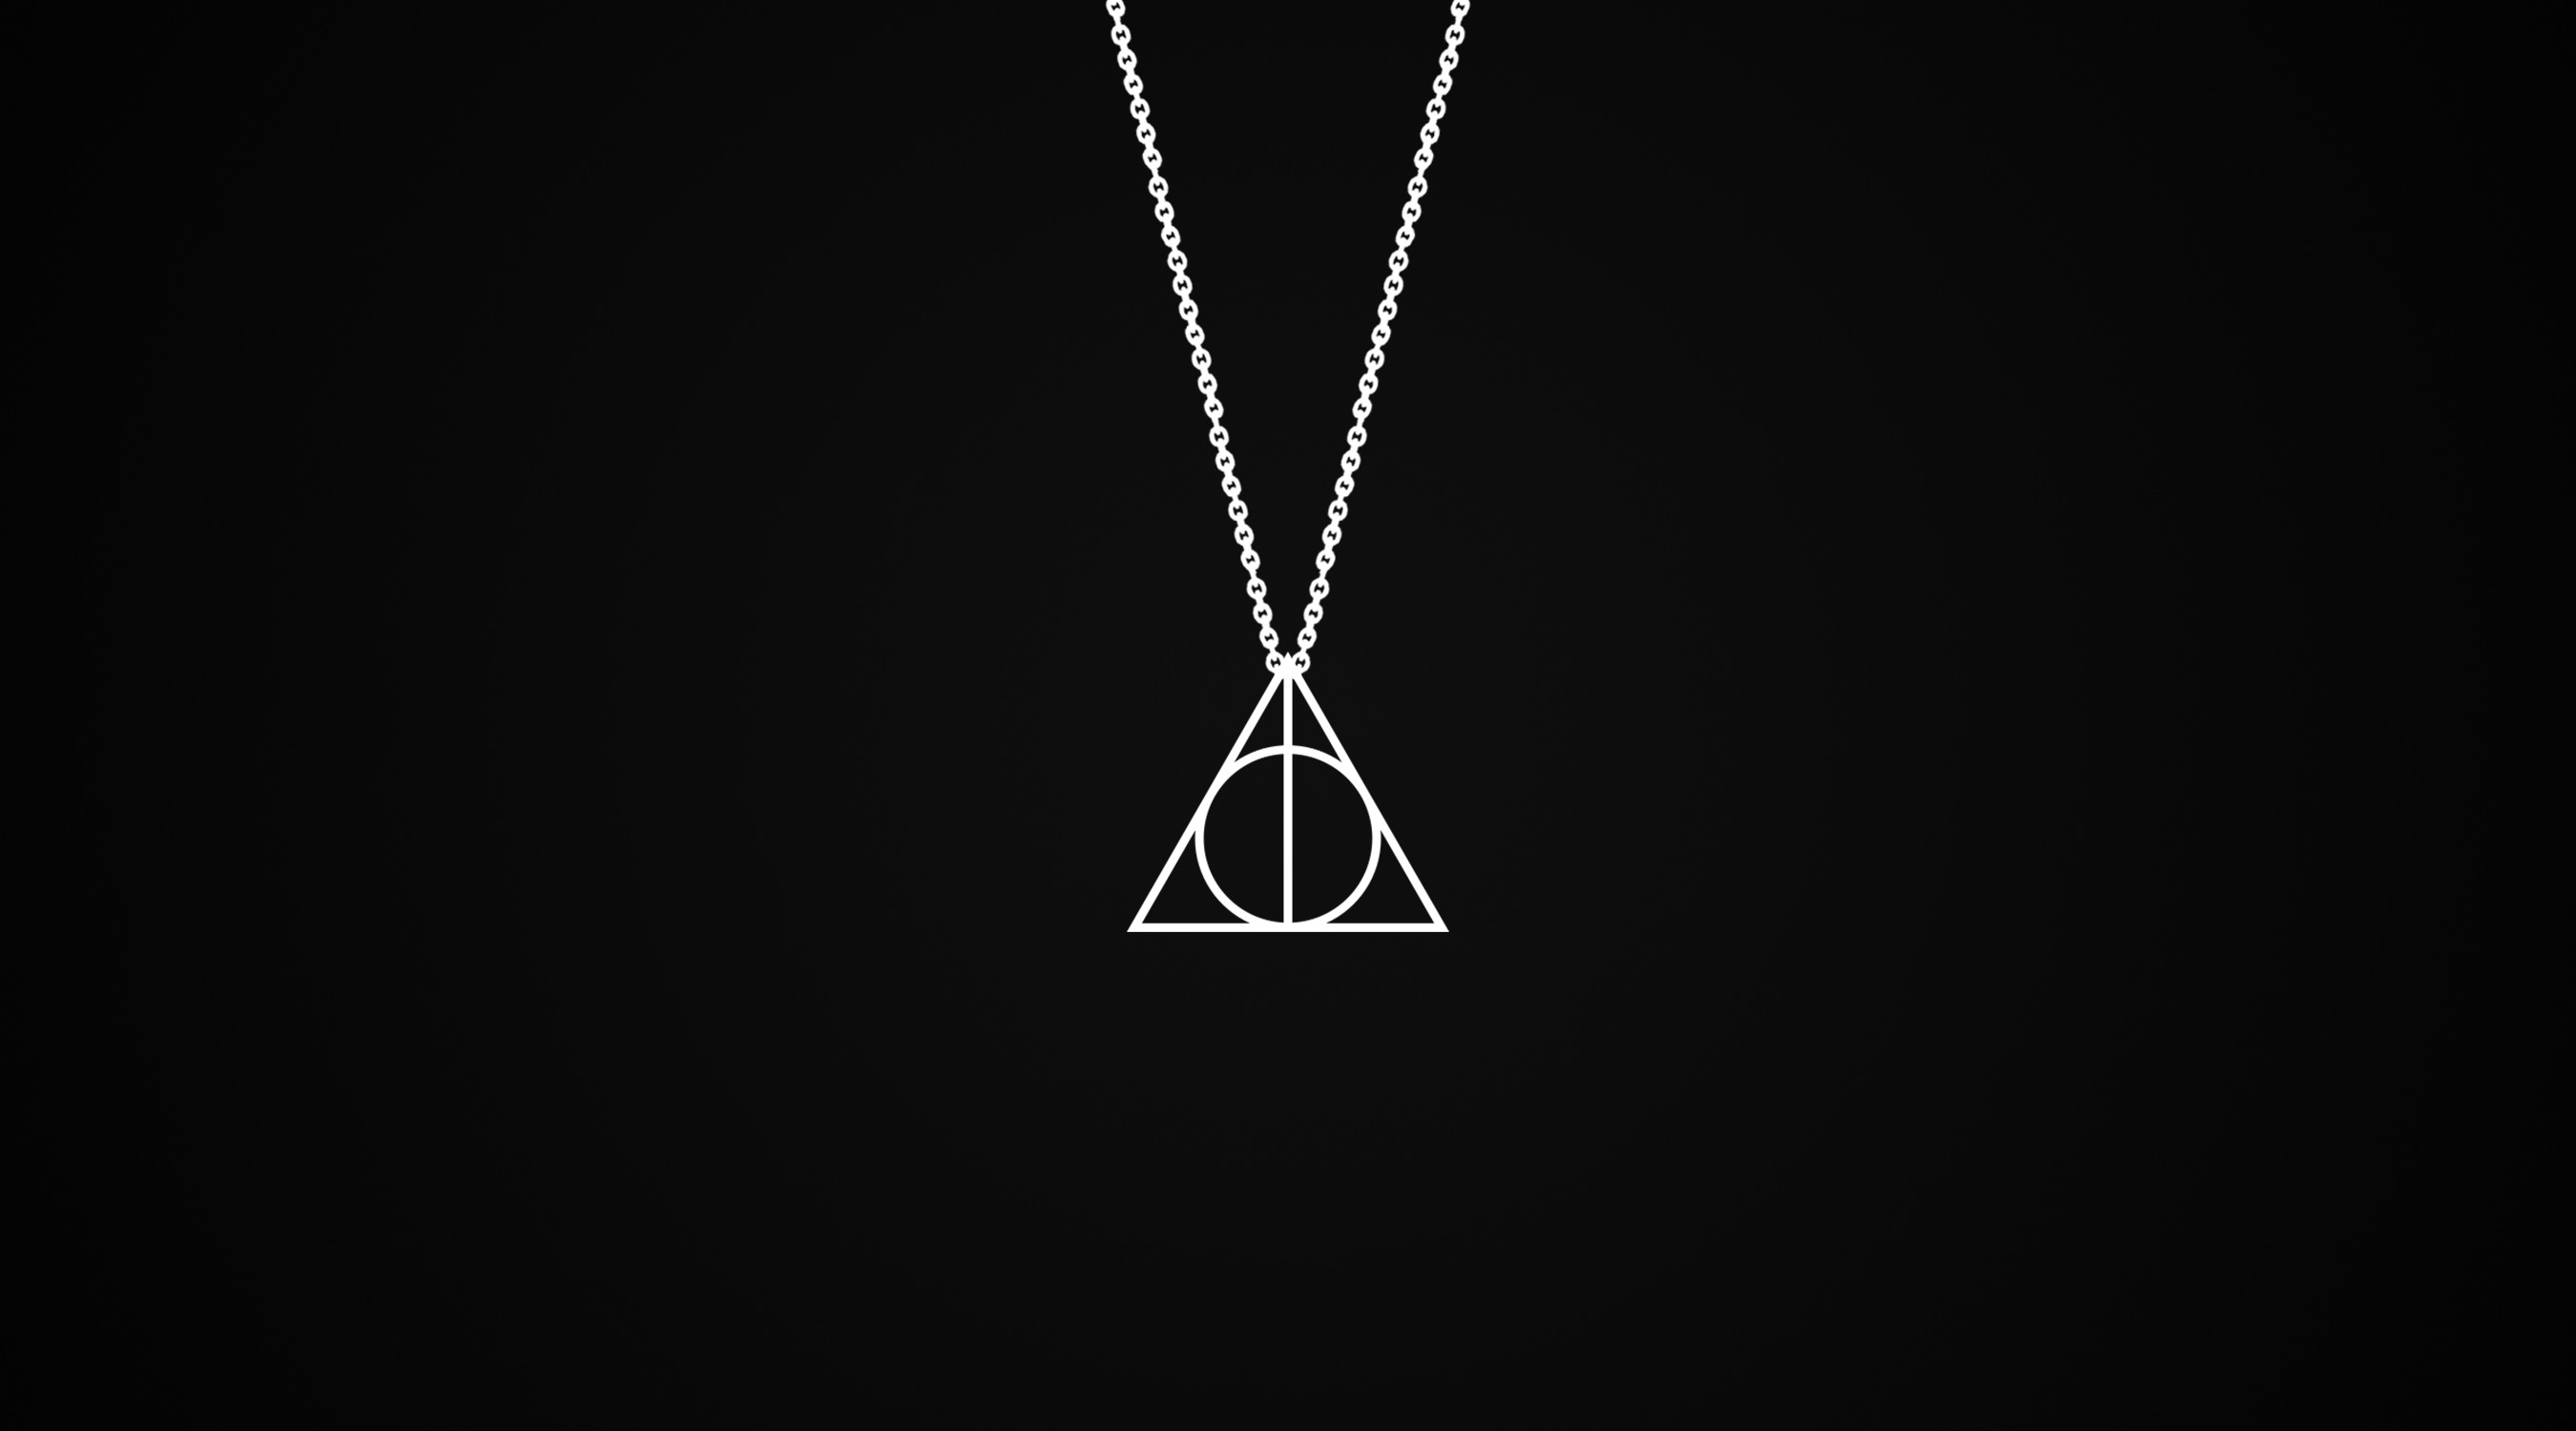 Res: 2700x1500, Deathly Hallows Wallpaper by louie20x6 Deathly Hallows Wallpaper by  louie20x6